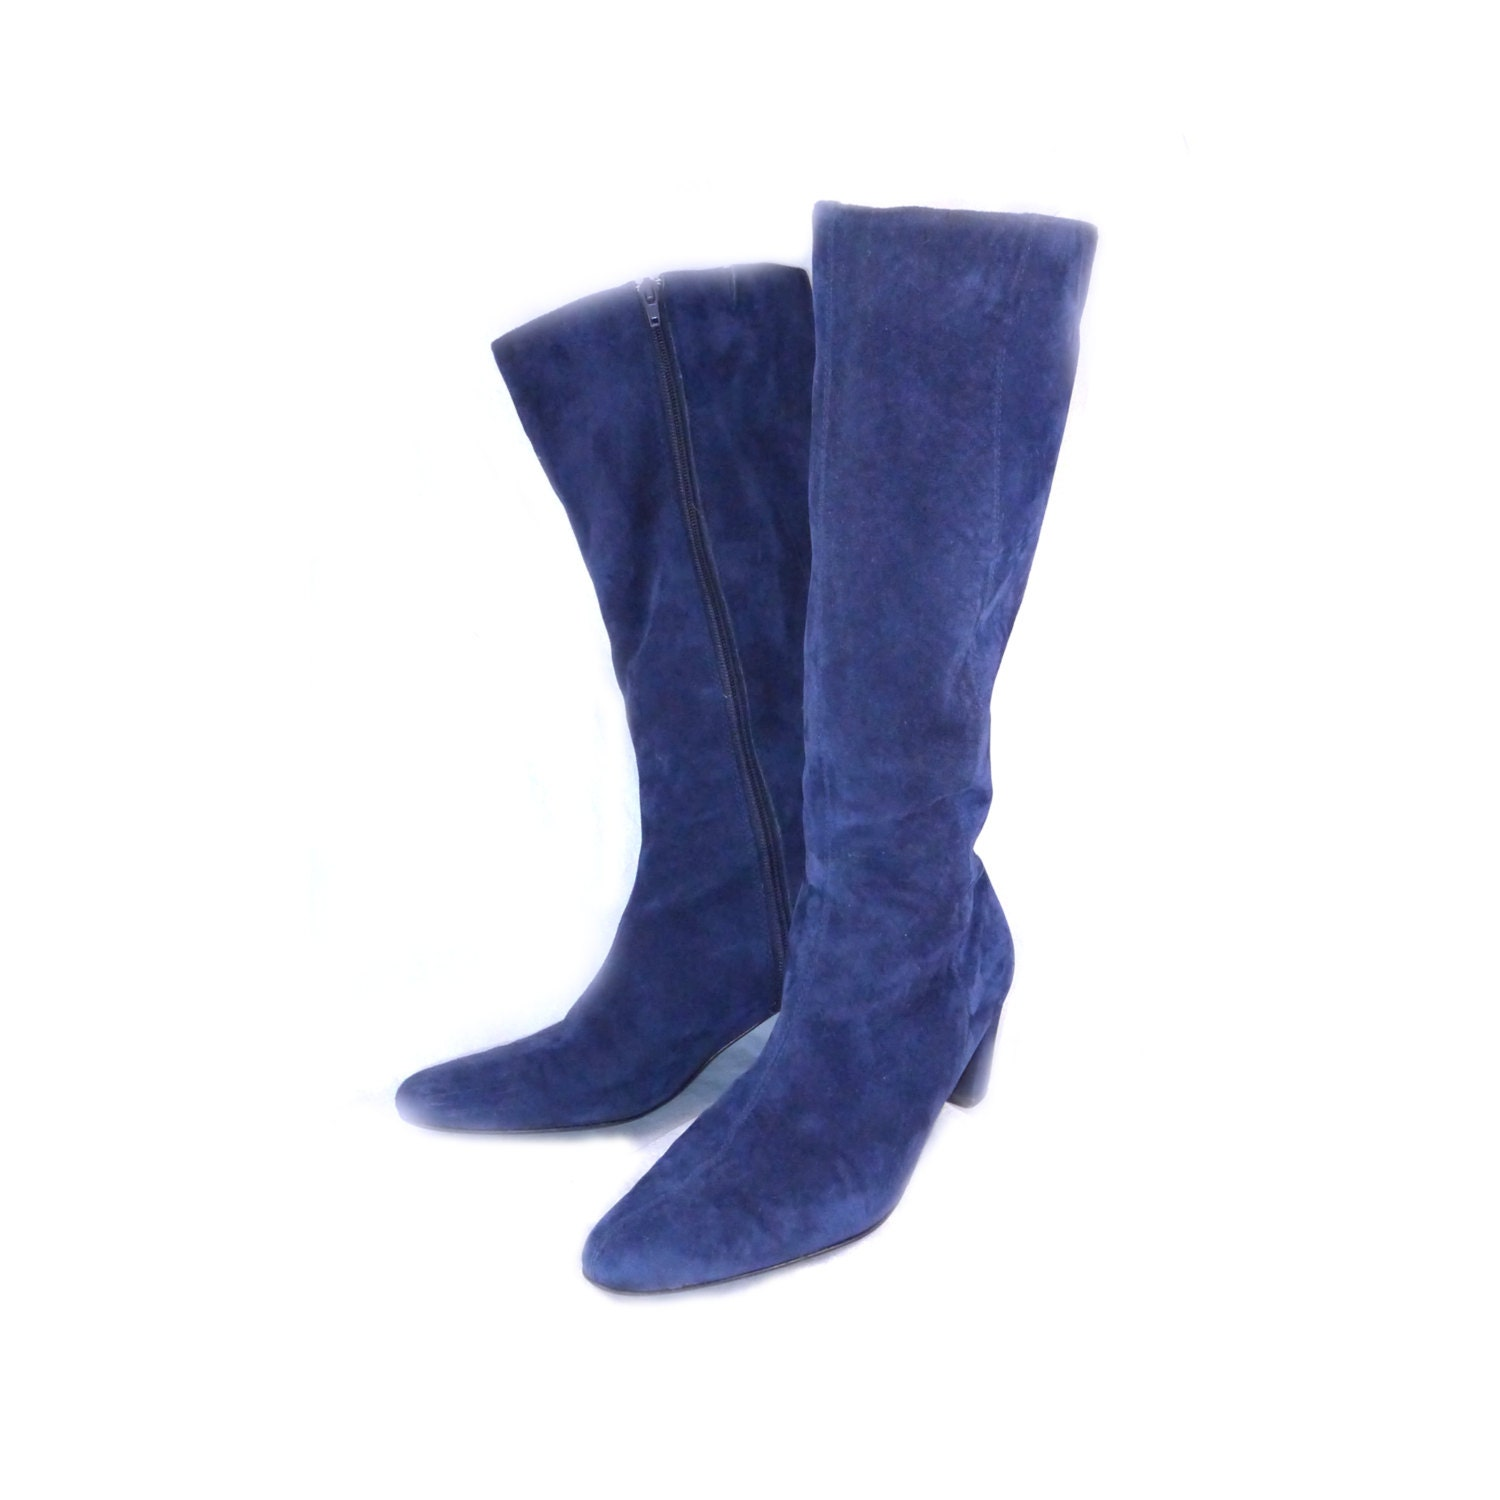 knee high blue suede boots by curatedcloset